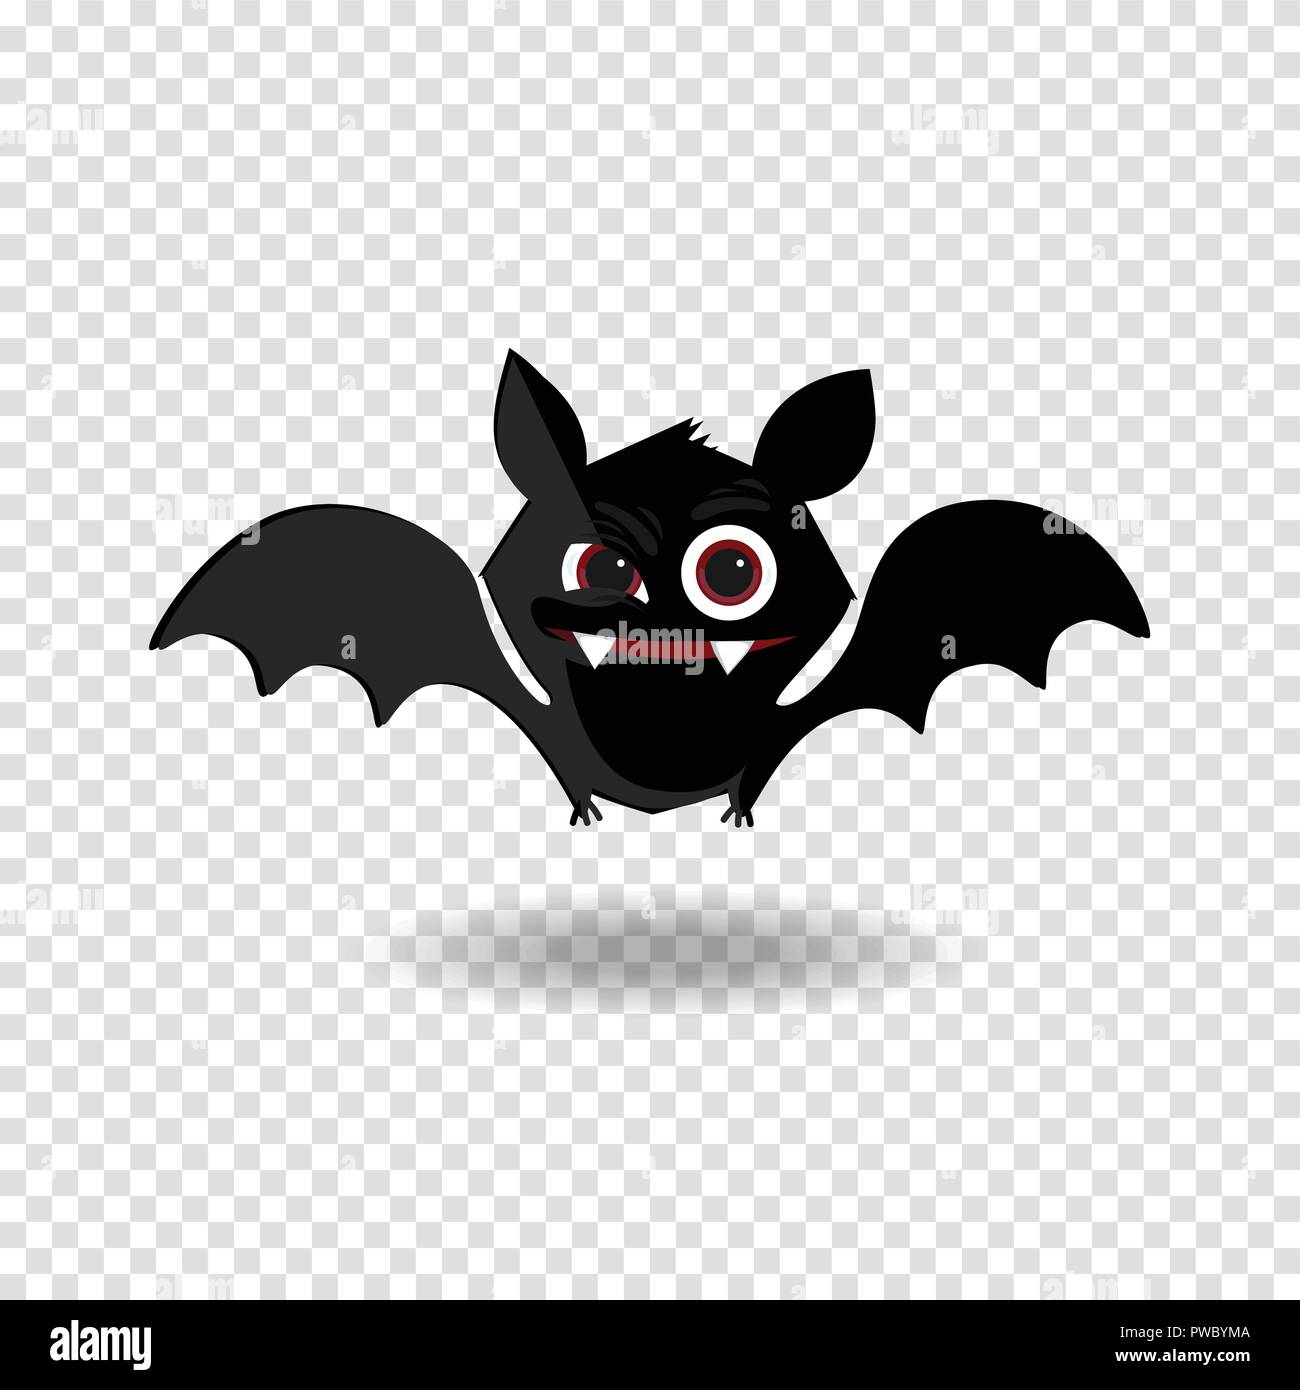 vector cartoon illustration of cute friendly black bat character rh alamy com Happy Halloween Clip Art All Halloween Pictures Clip Art